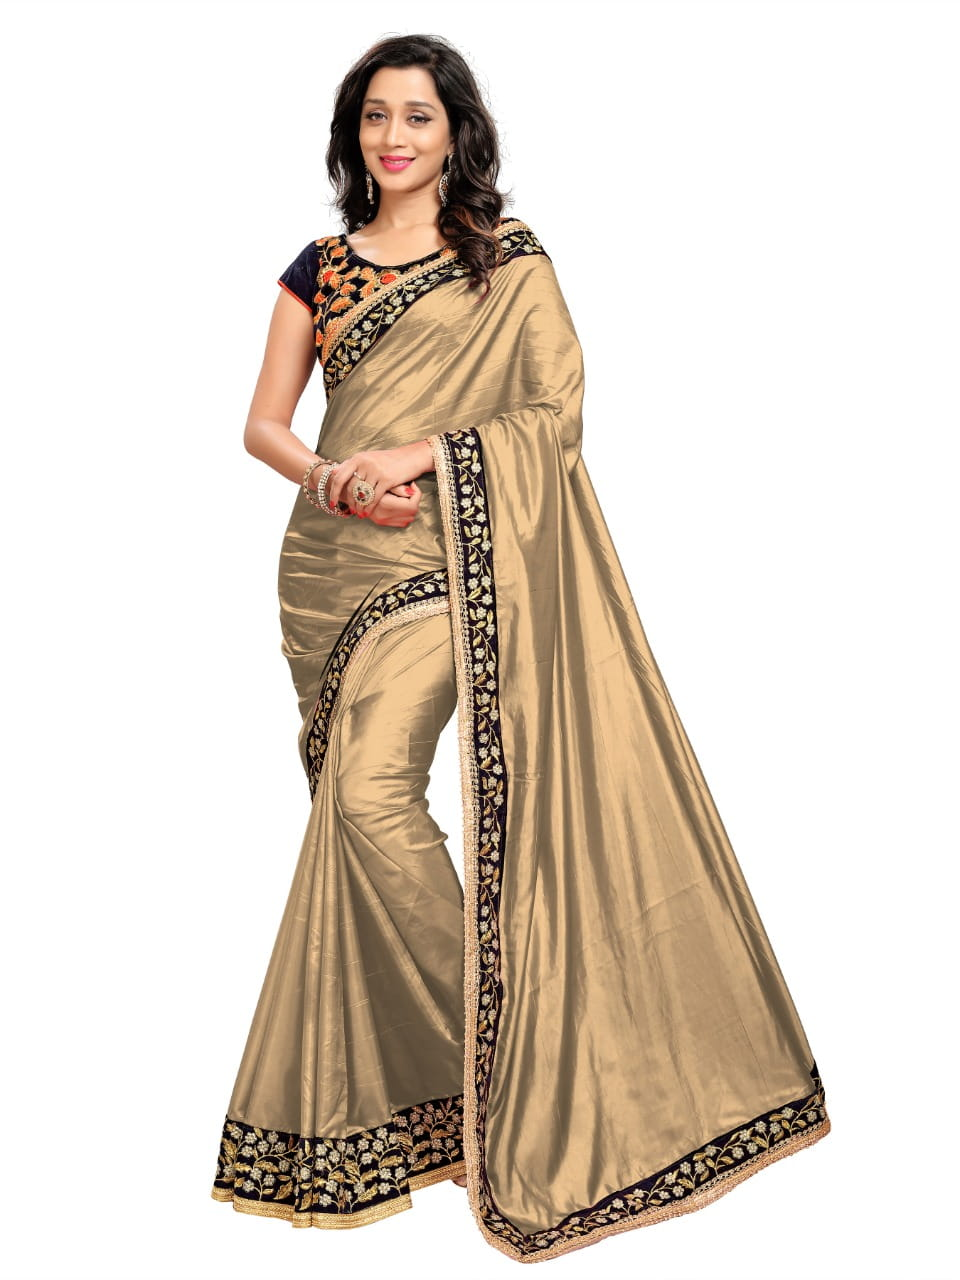 Preferable Golden Color Festive Wear Embroidered Work Designer Paper Silk Fancy Saree Blouse